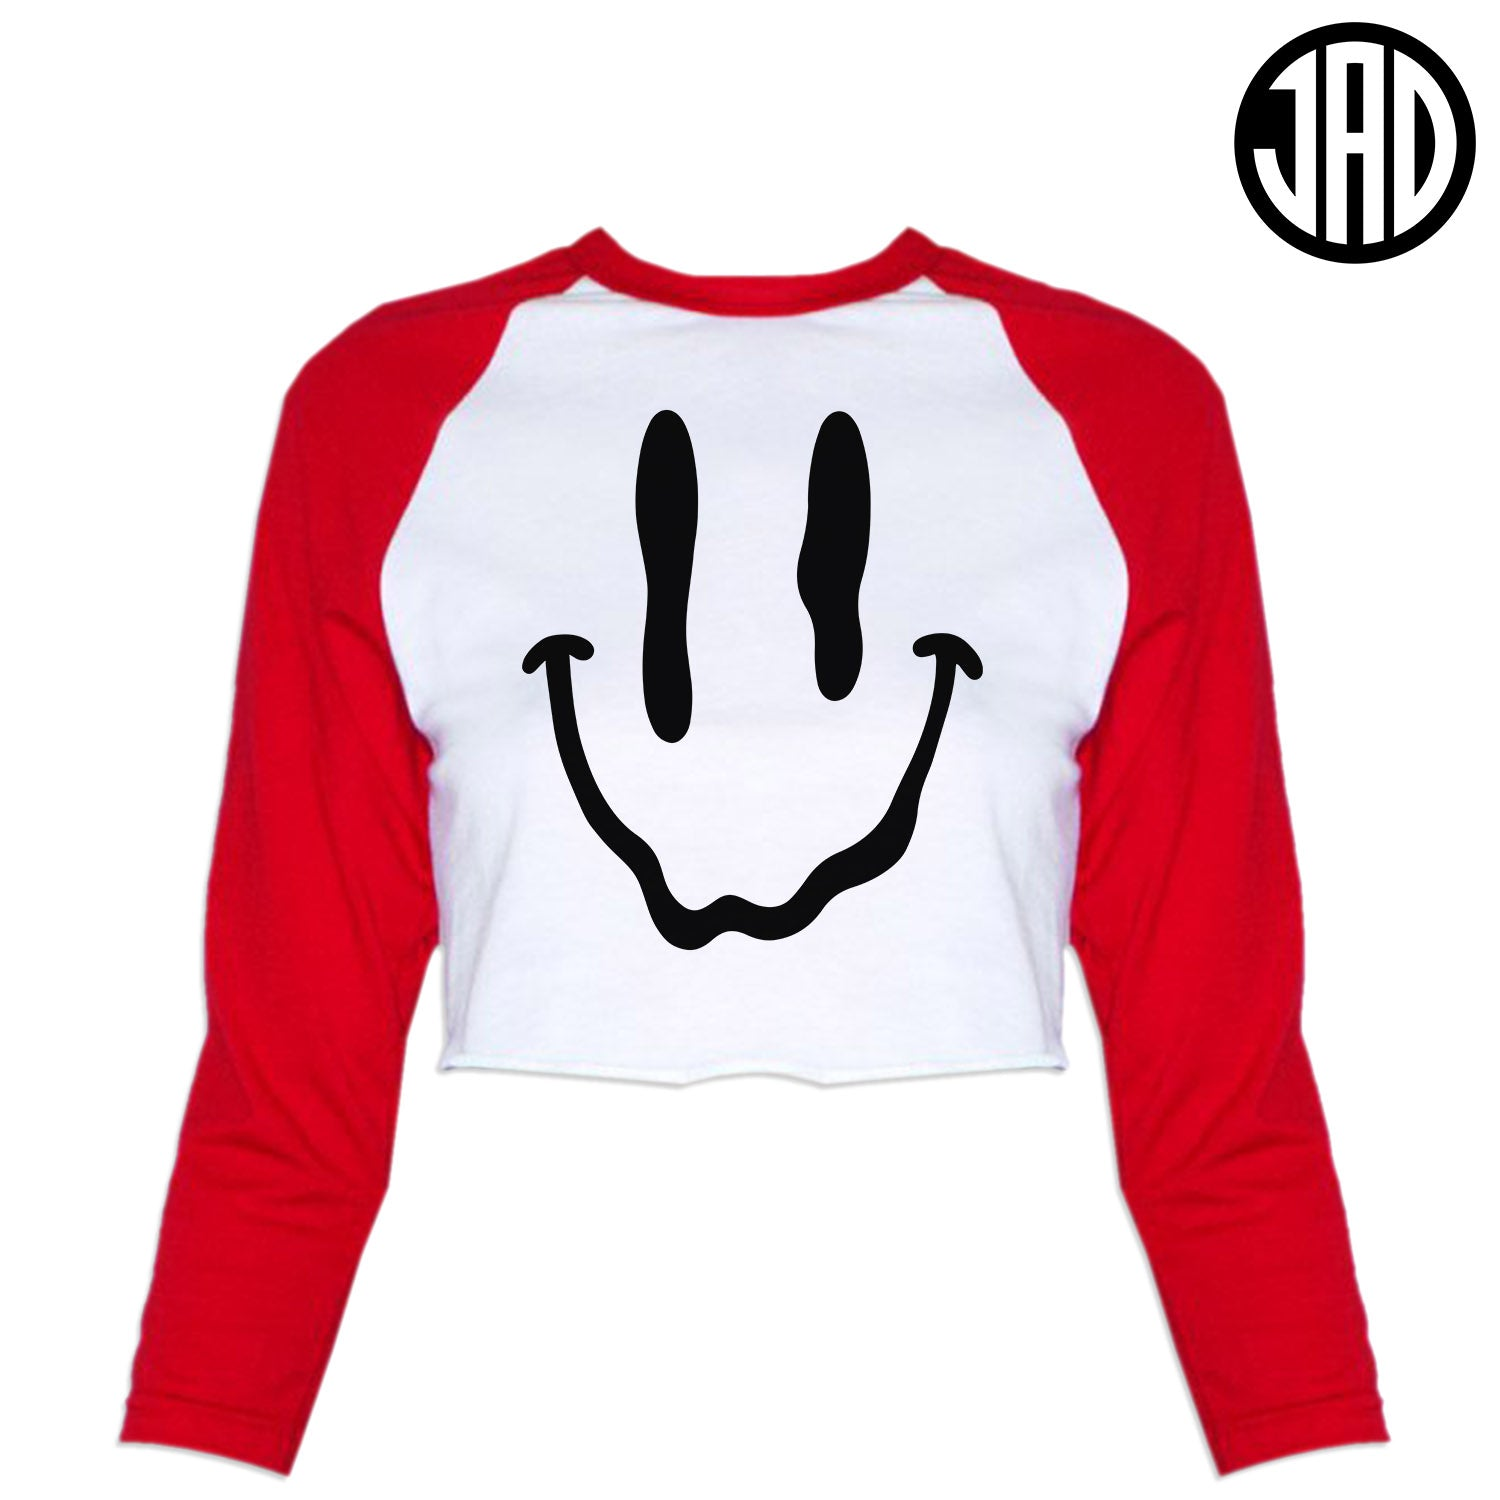 Melty Face - Women's Cropped Baseball Tee